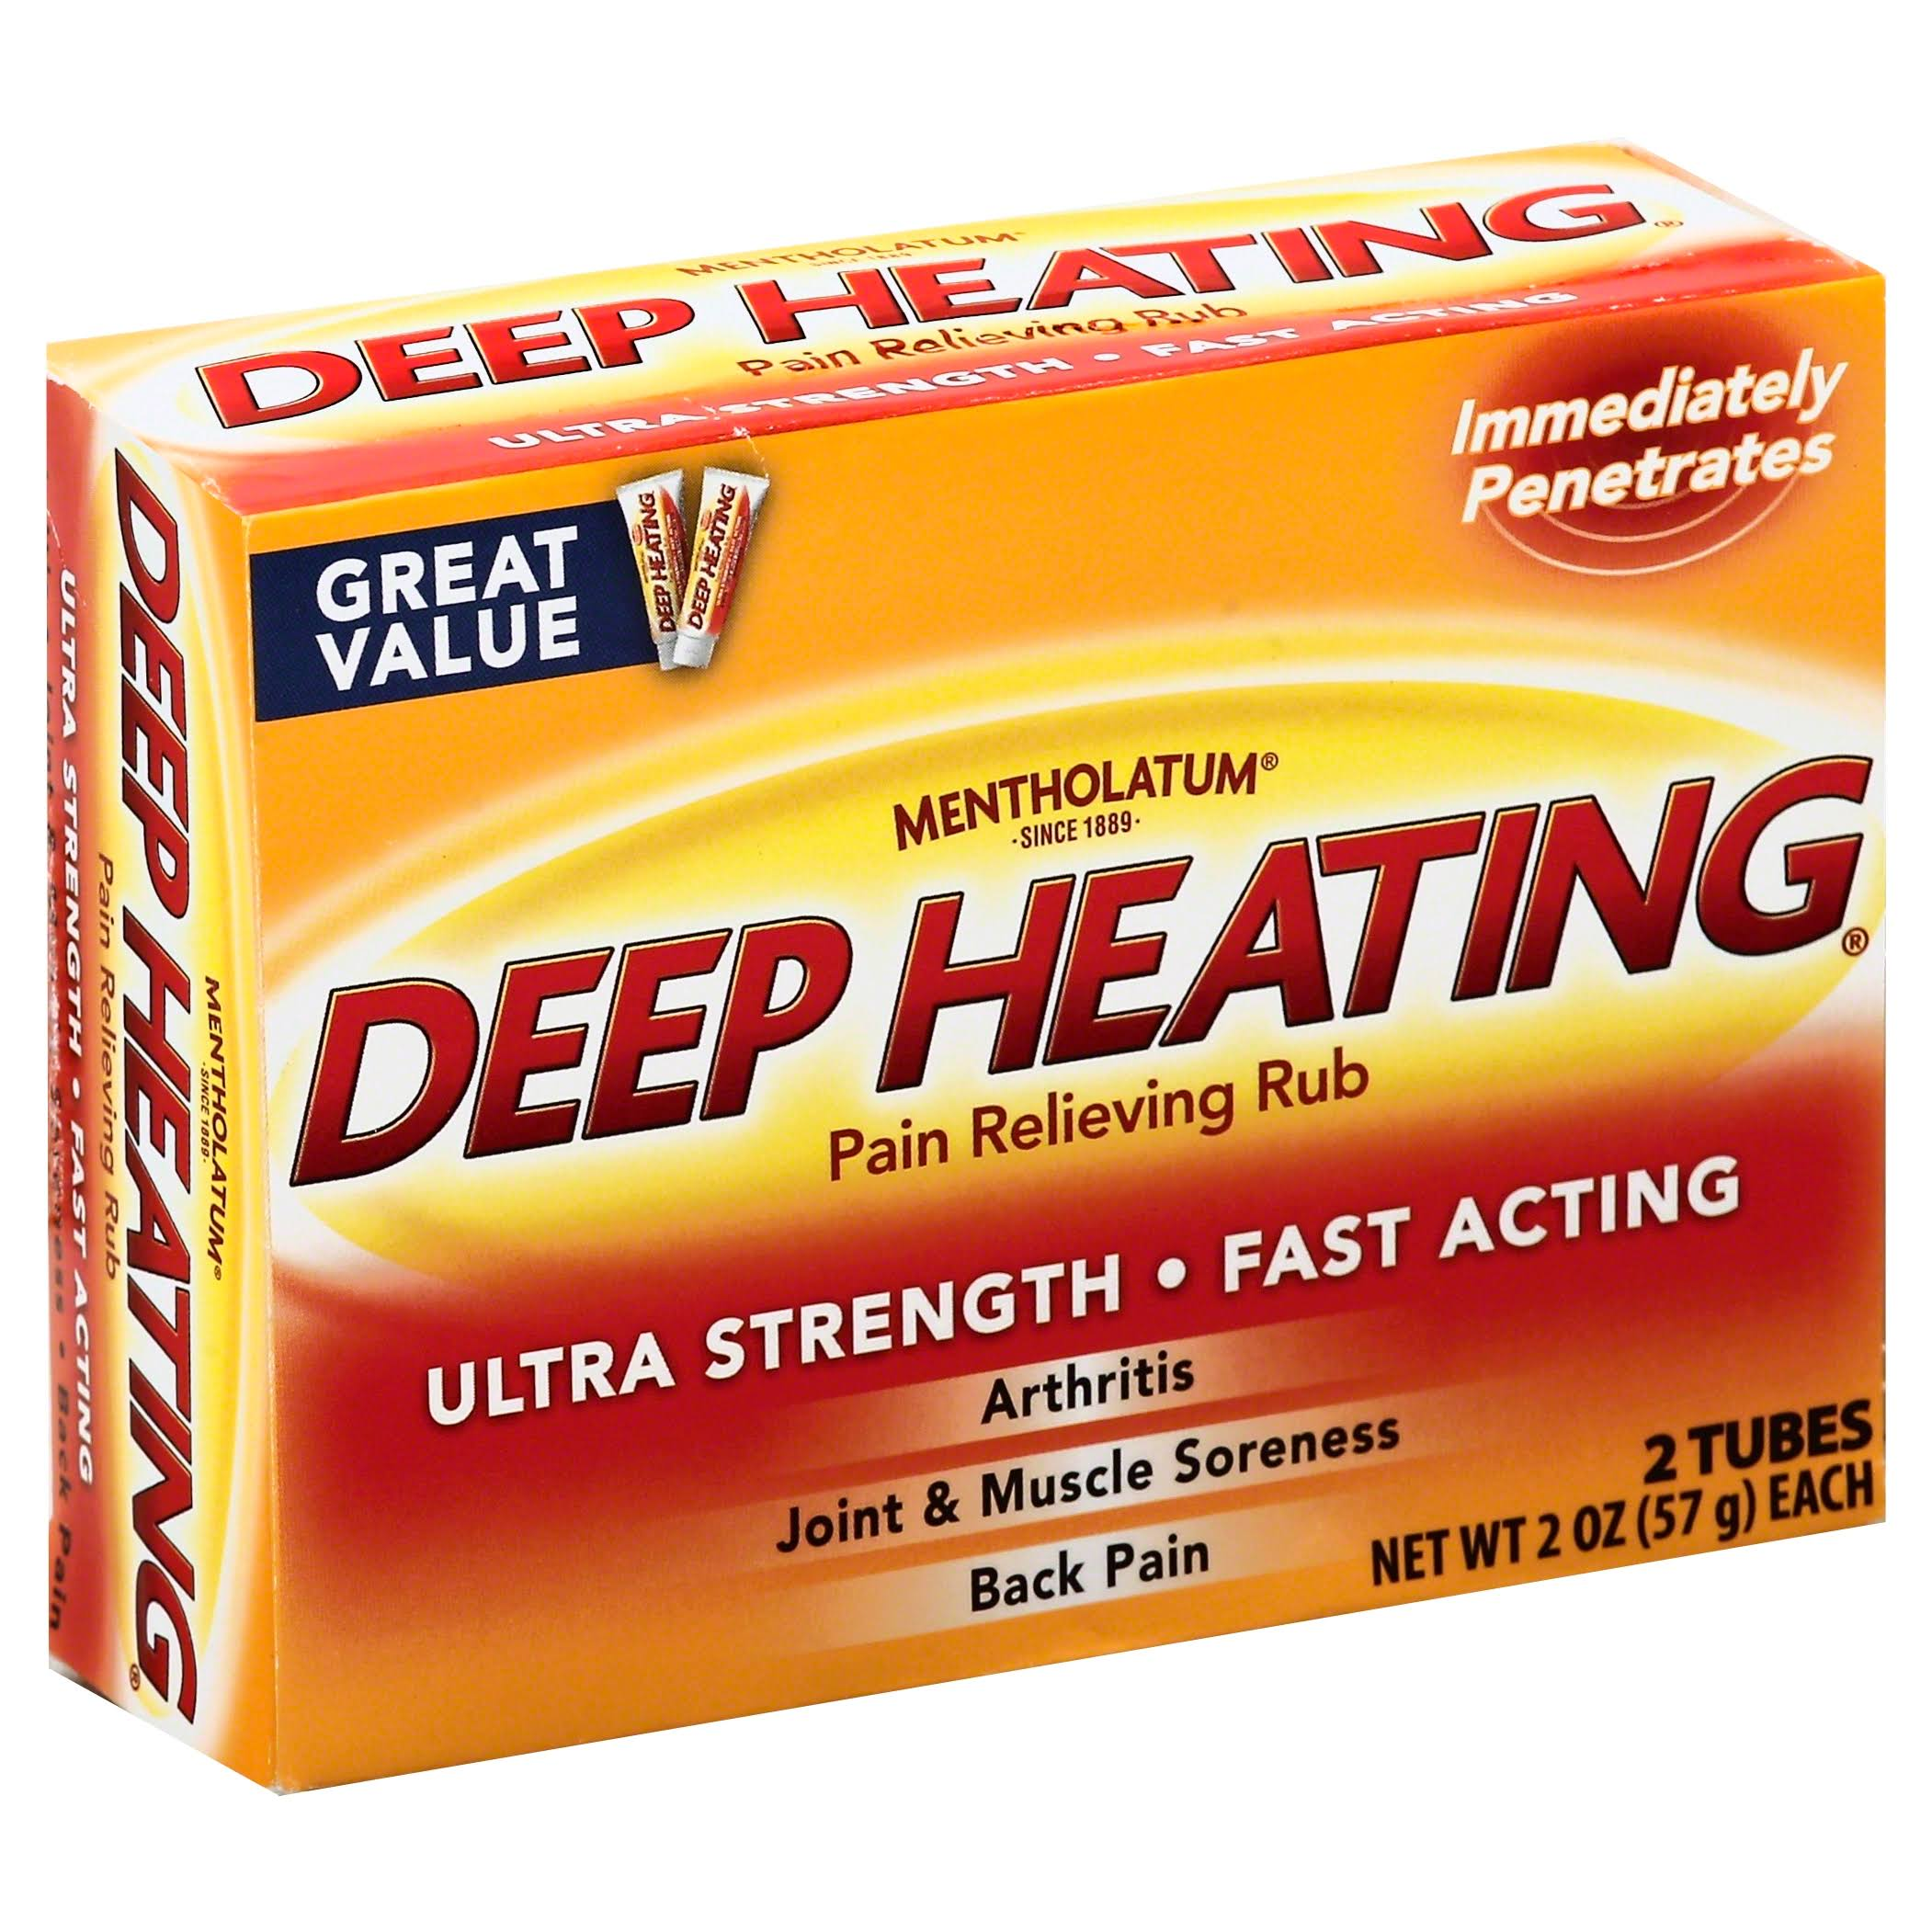 Mentholatum Deep Heating Pain Relieving Rub - 2 Tunes, 114g